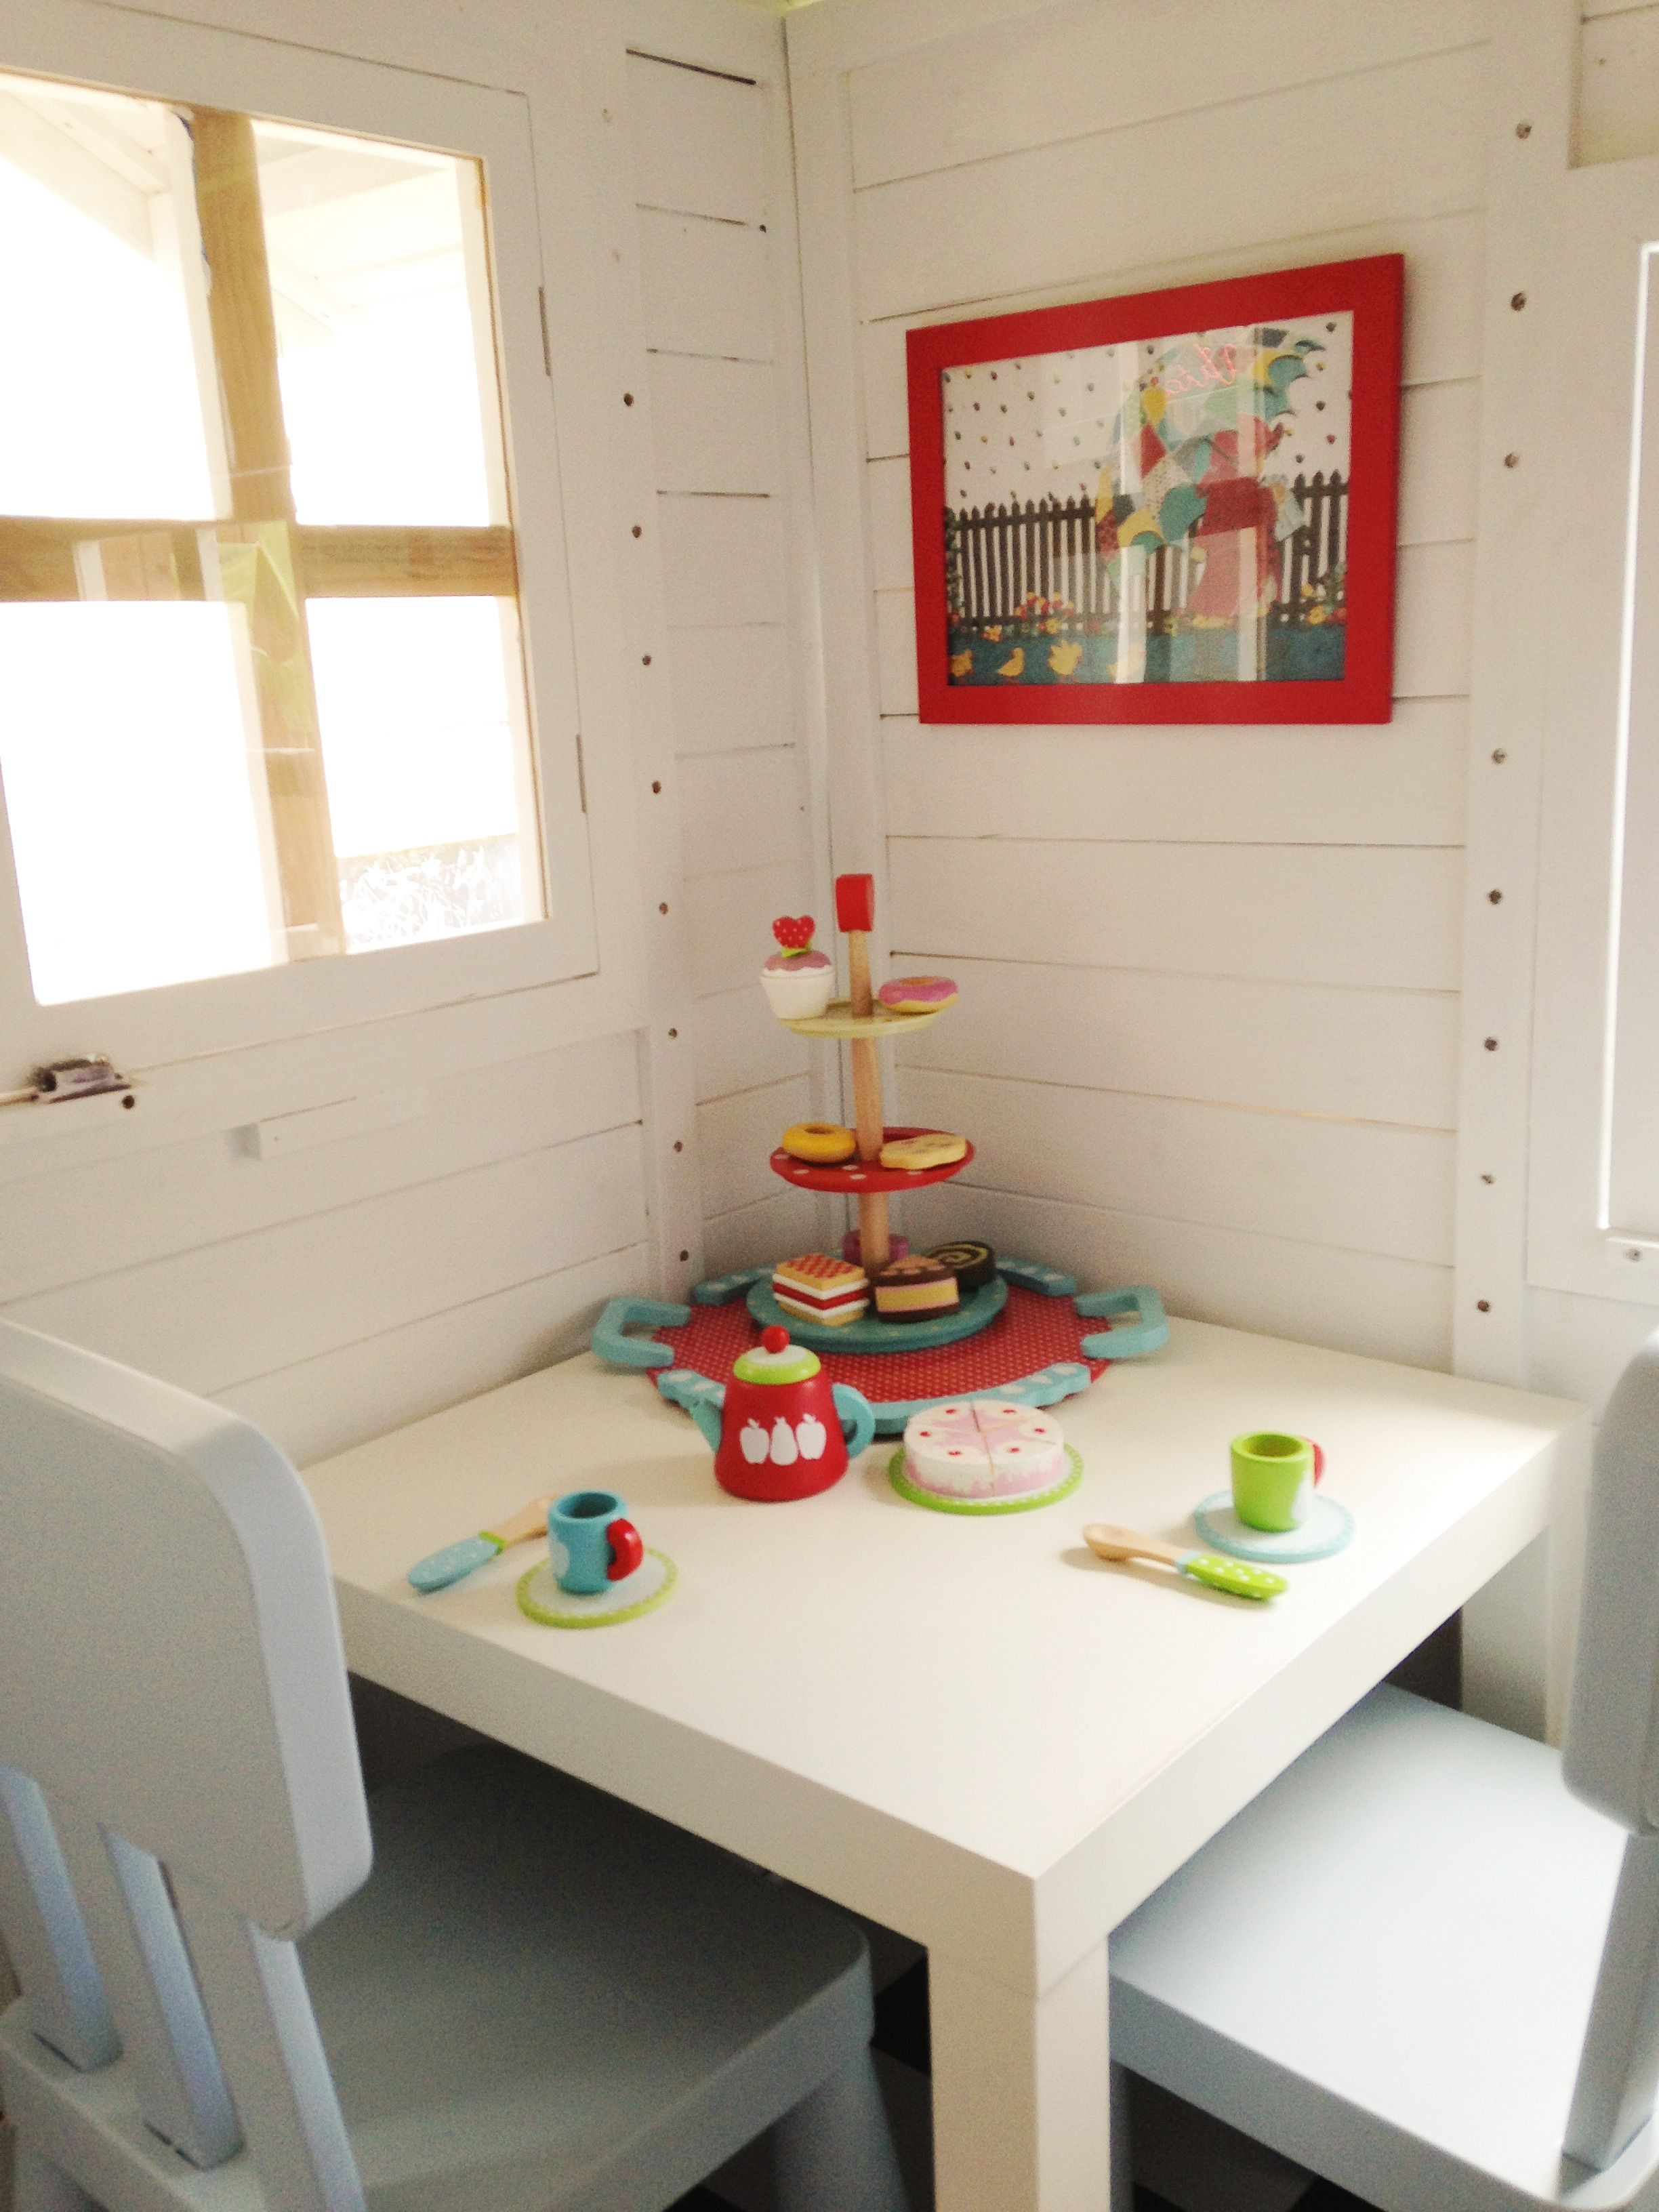 Cubby house interior ikea table and chairs kmart tea set